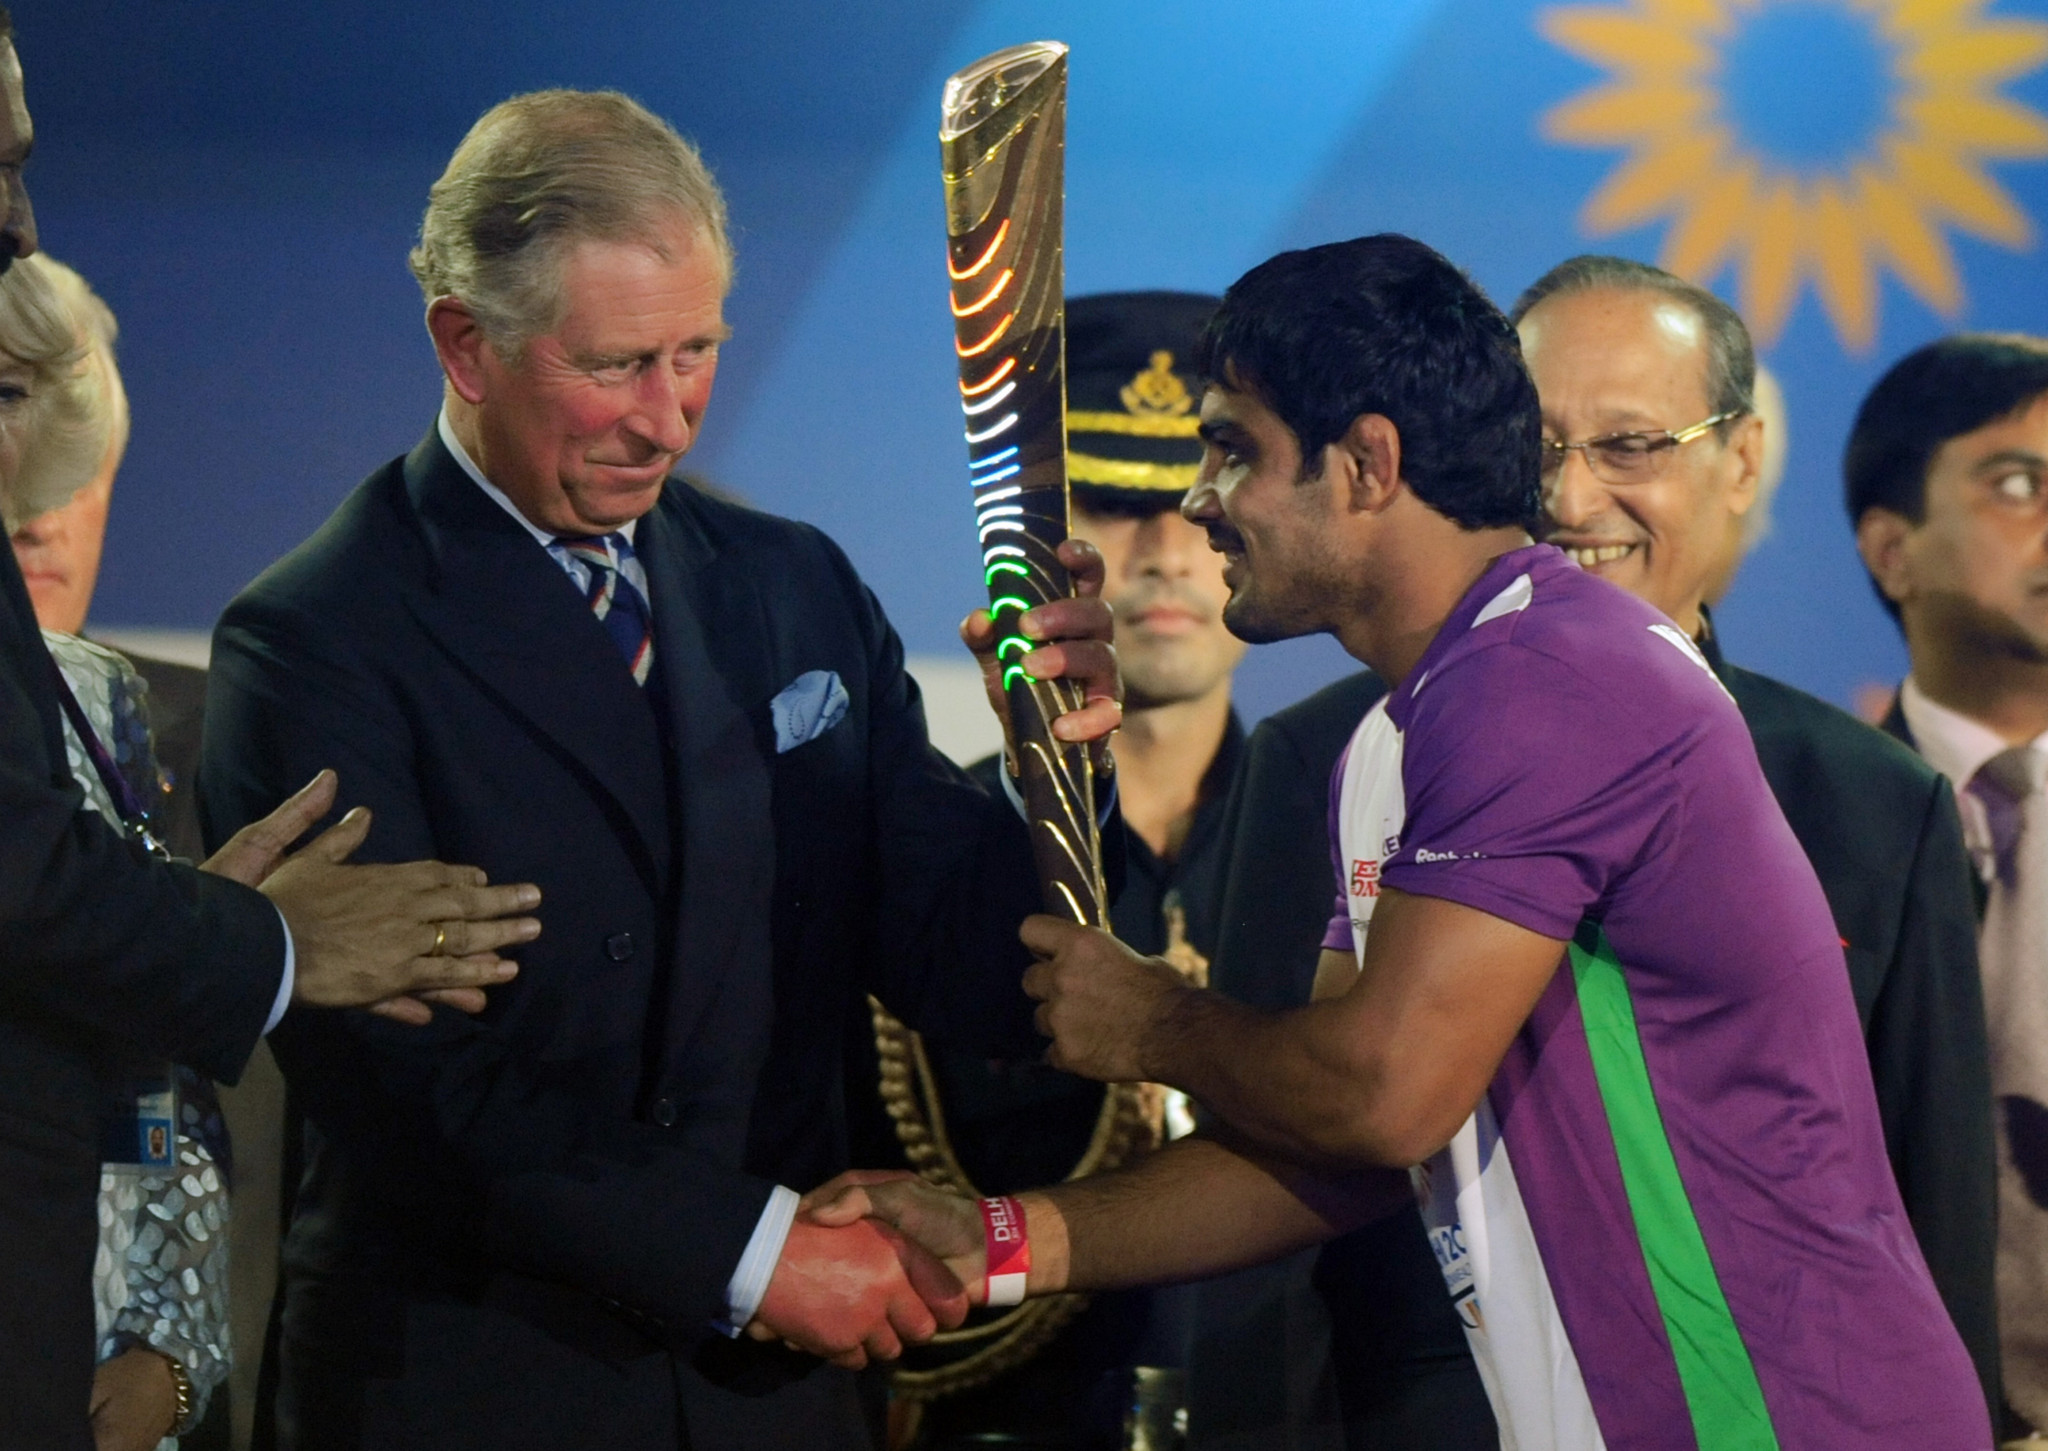 Prince Charles, the Prince of Wales, receives the Queen's Baton from Indian wrestler Sushil Kumar at the XIX Commonwealth Games opening ceremony in New Delhi in 2010. The Prince will again play a leading role in Gold Coast ©Getty Images